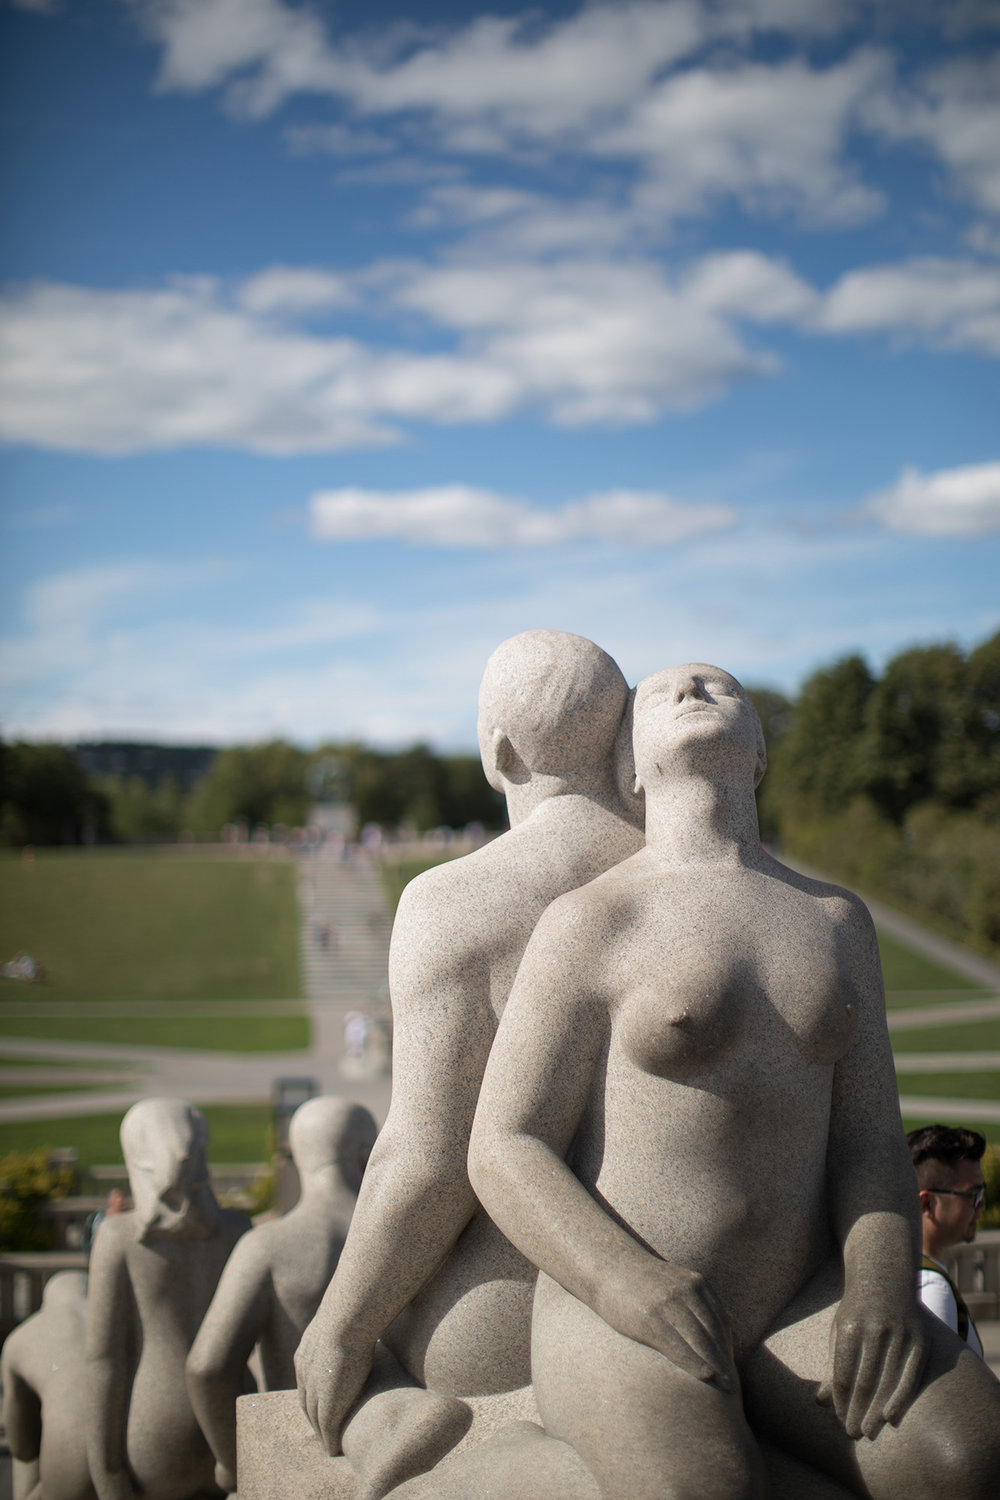 Vigeland Sculpture Park, Oslo - Instagrammer's guide to Oslo - 91 Magazine